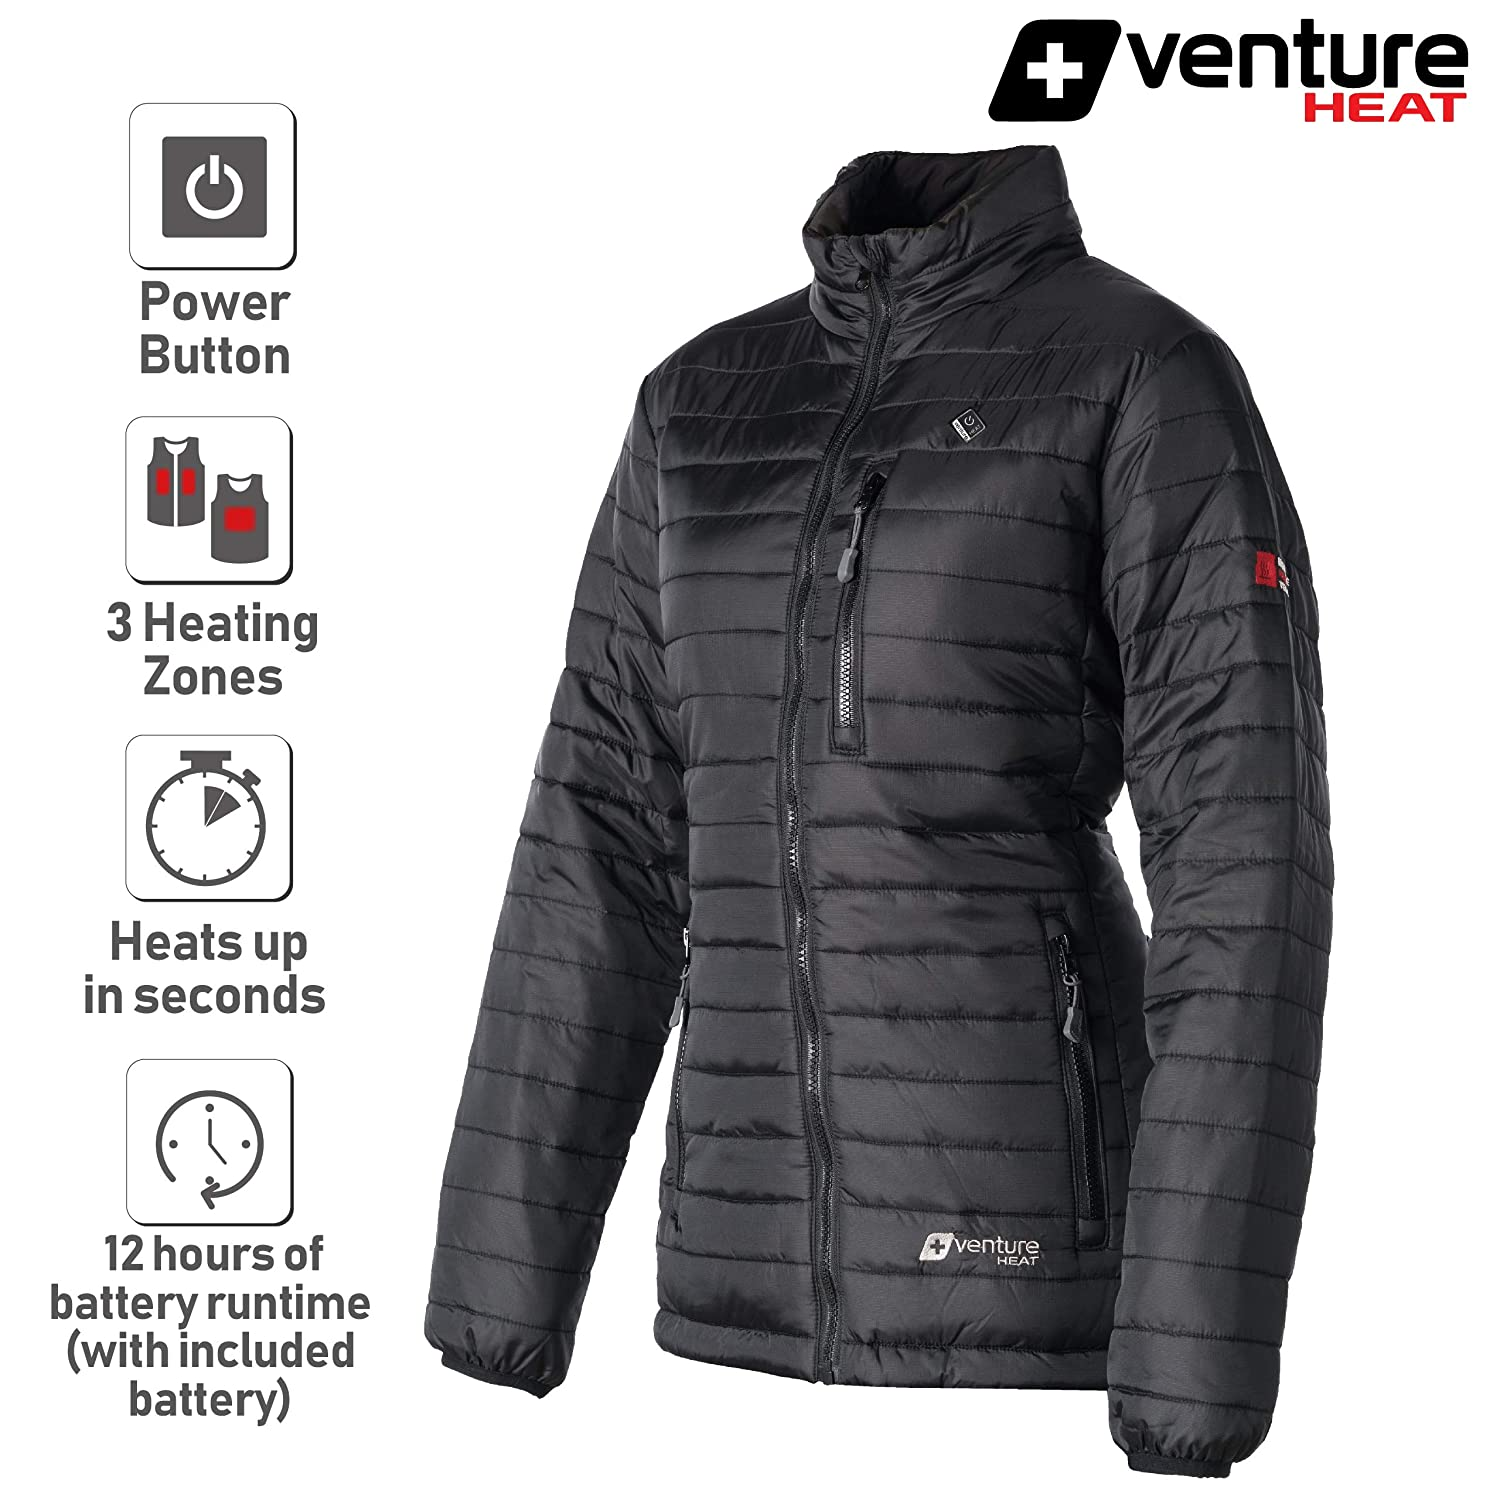 Battery Heated Clothing >> Venture Heat Women S Heated Jacket With Battery 12 Hour The Traverse Packable Puffer Heated Jacket For Women